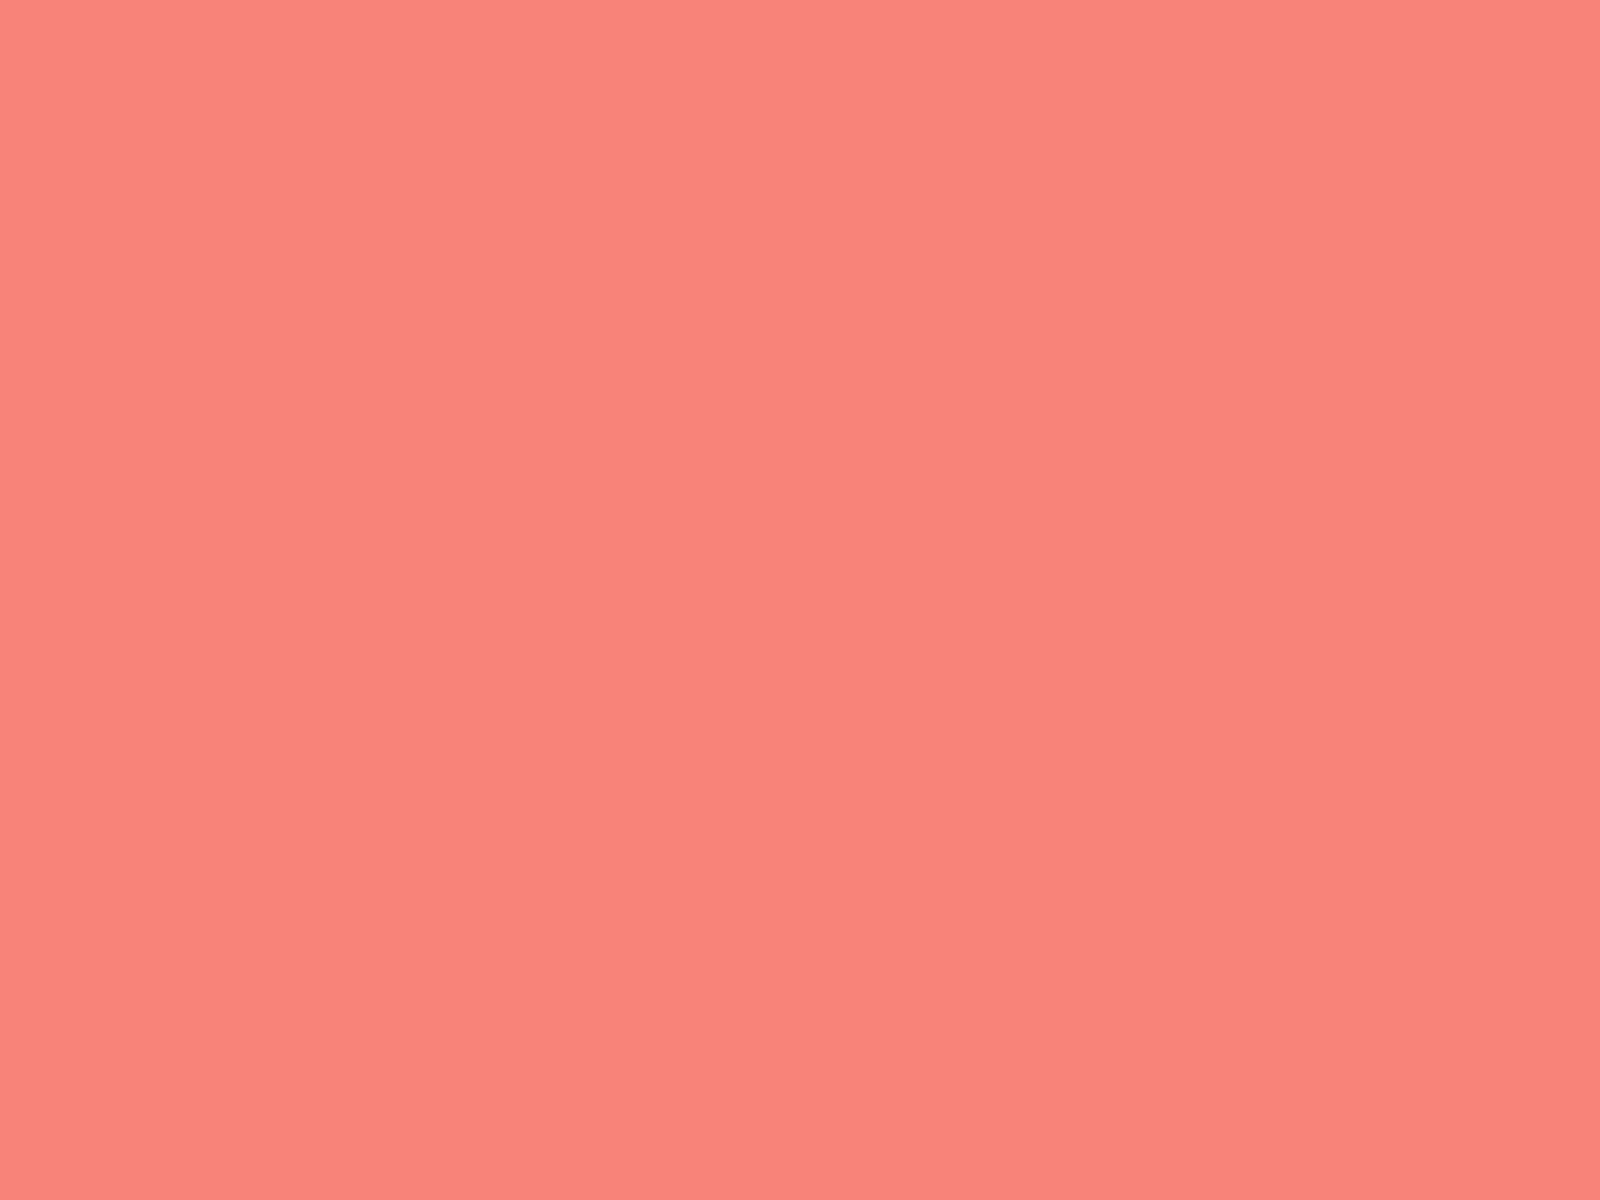 1600x1200 Congo Pink Solid Color Background